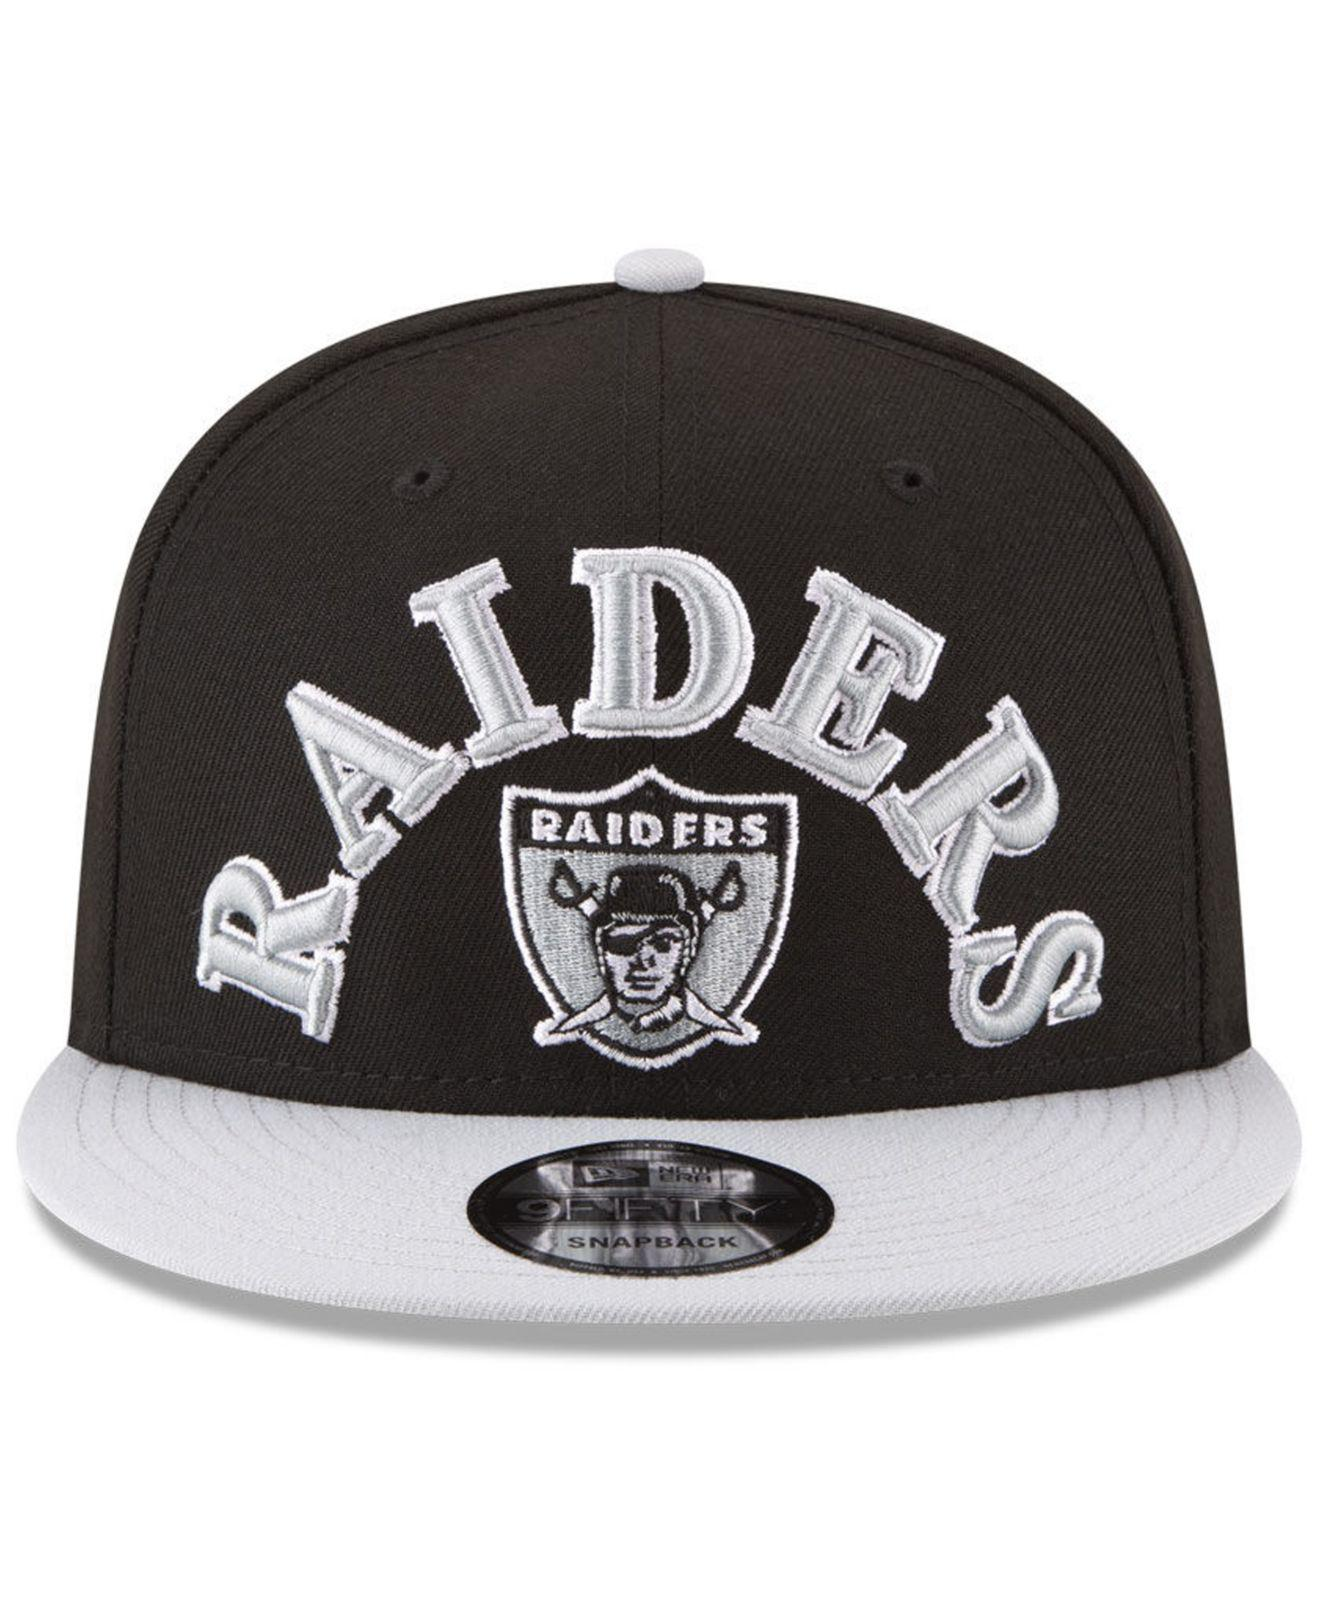 official photos 8616b 757be ... wholesale lyst ktz oakland raiders retro logo 9fifty snapback cap in  black for men 666de 21779 ...